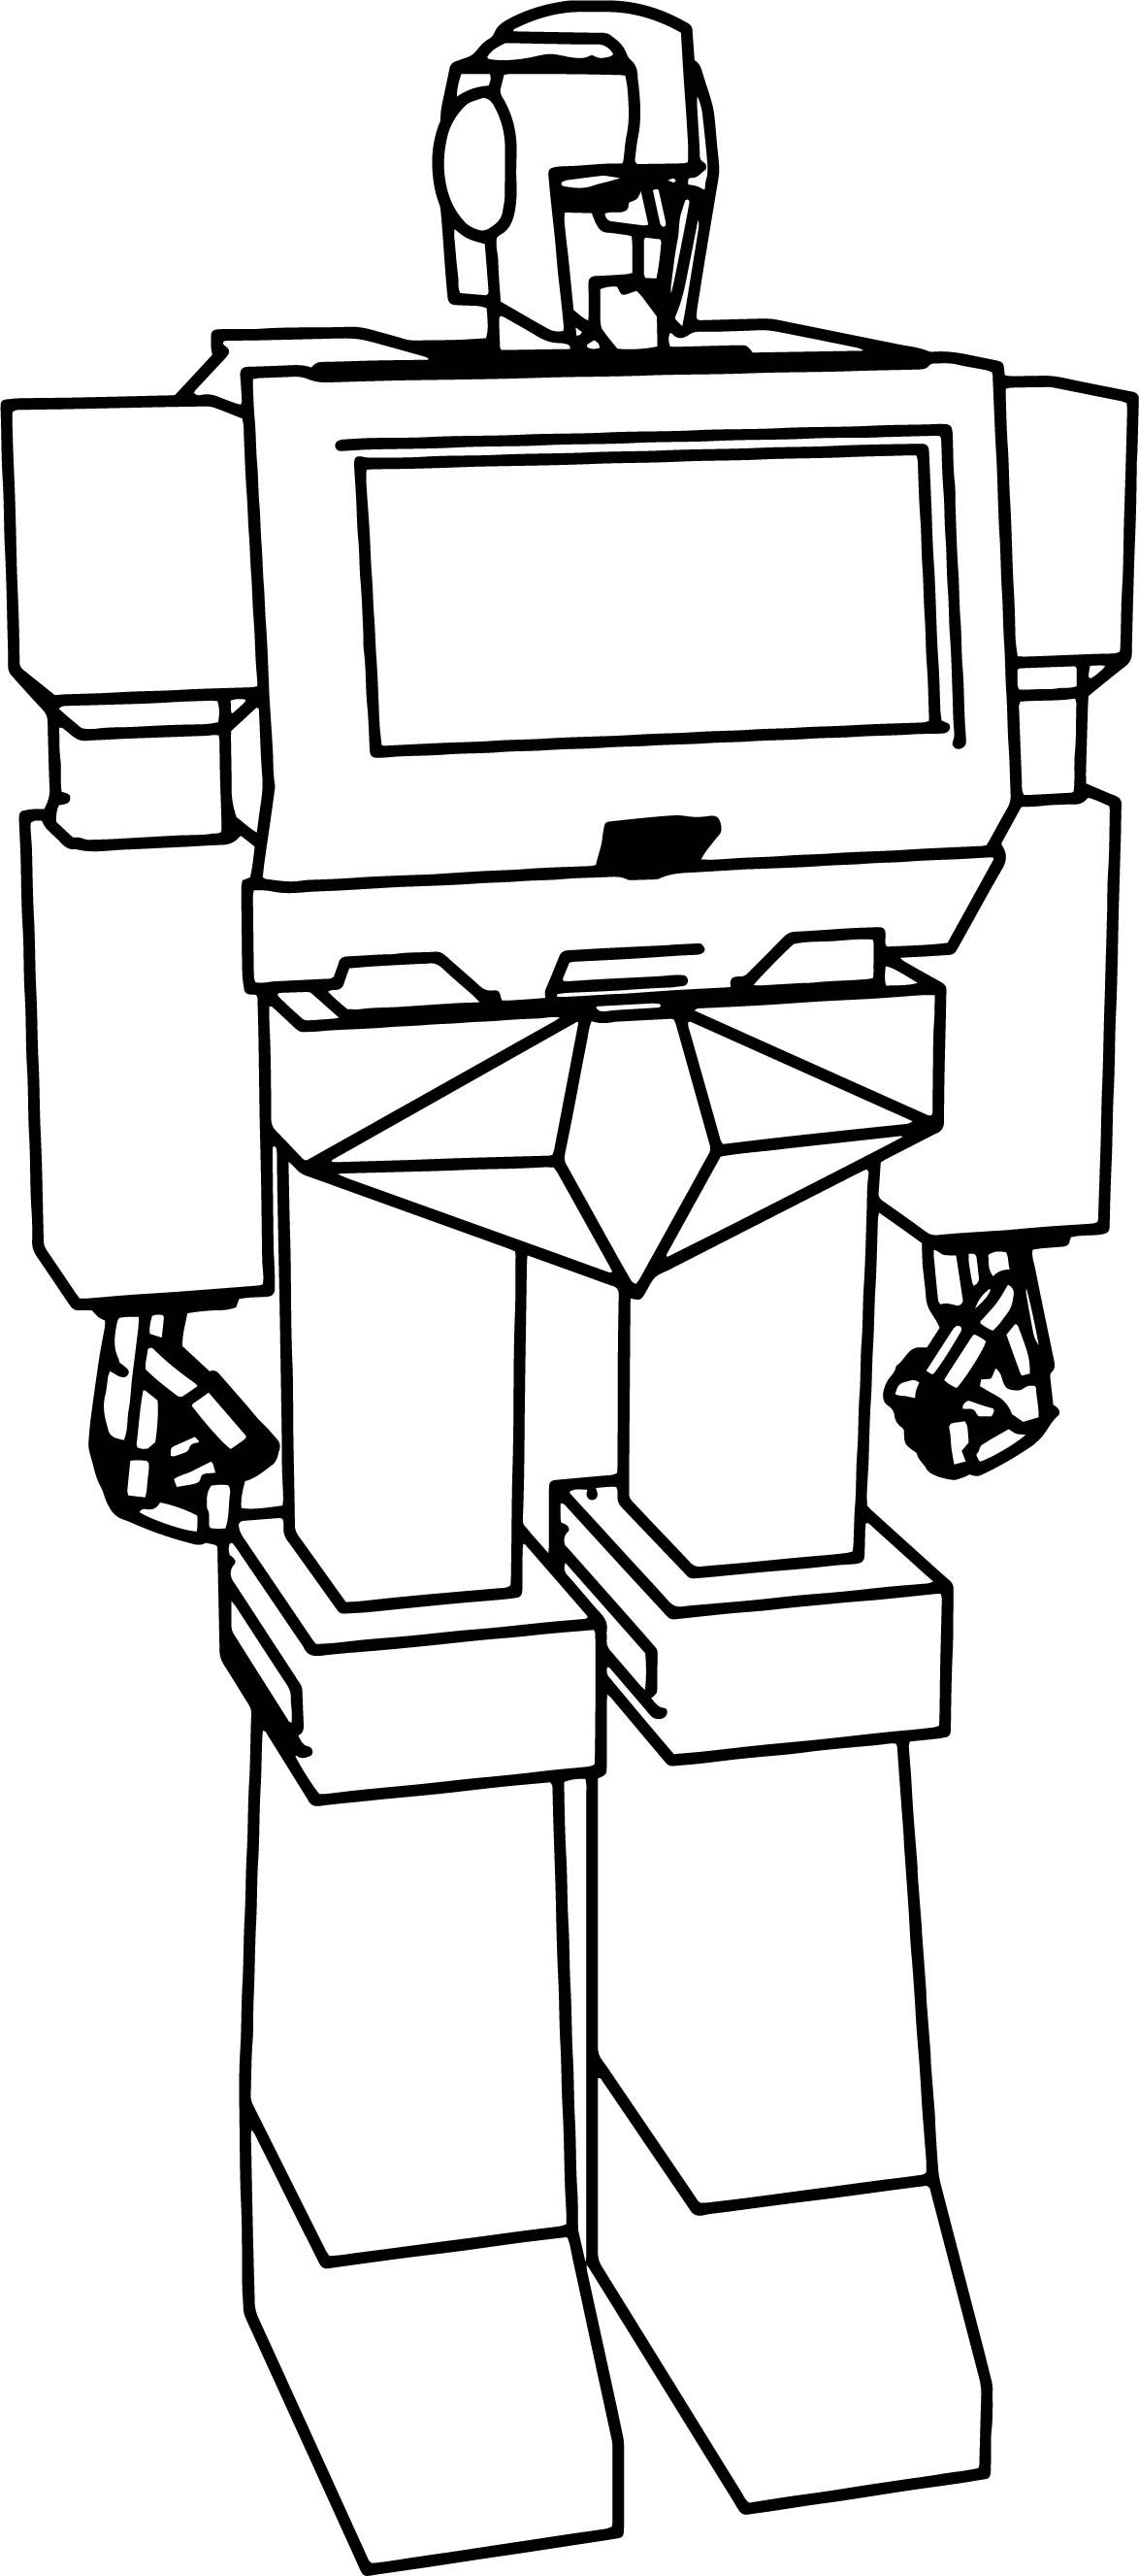 Iron Hide G1 Autobot Coloring Page In 2018 Wecoloringpage Pinterest - Ironhide-coloring-pages